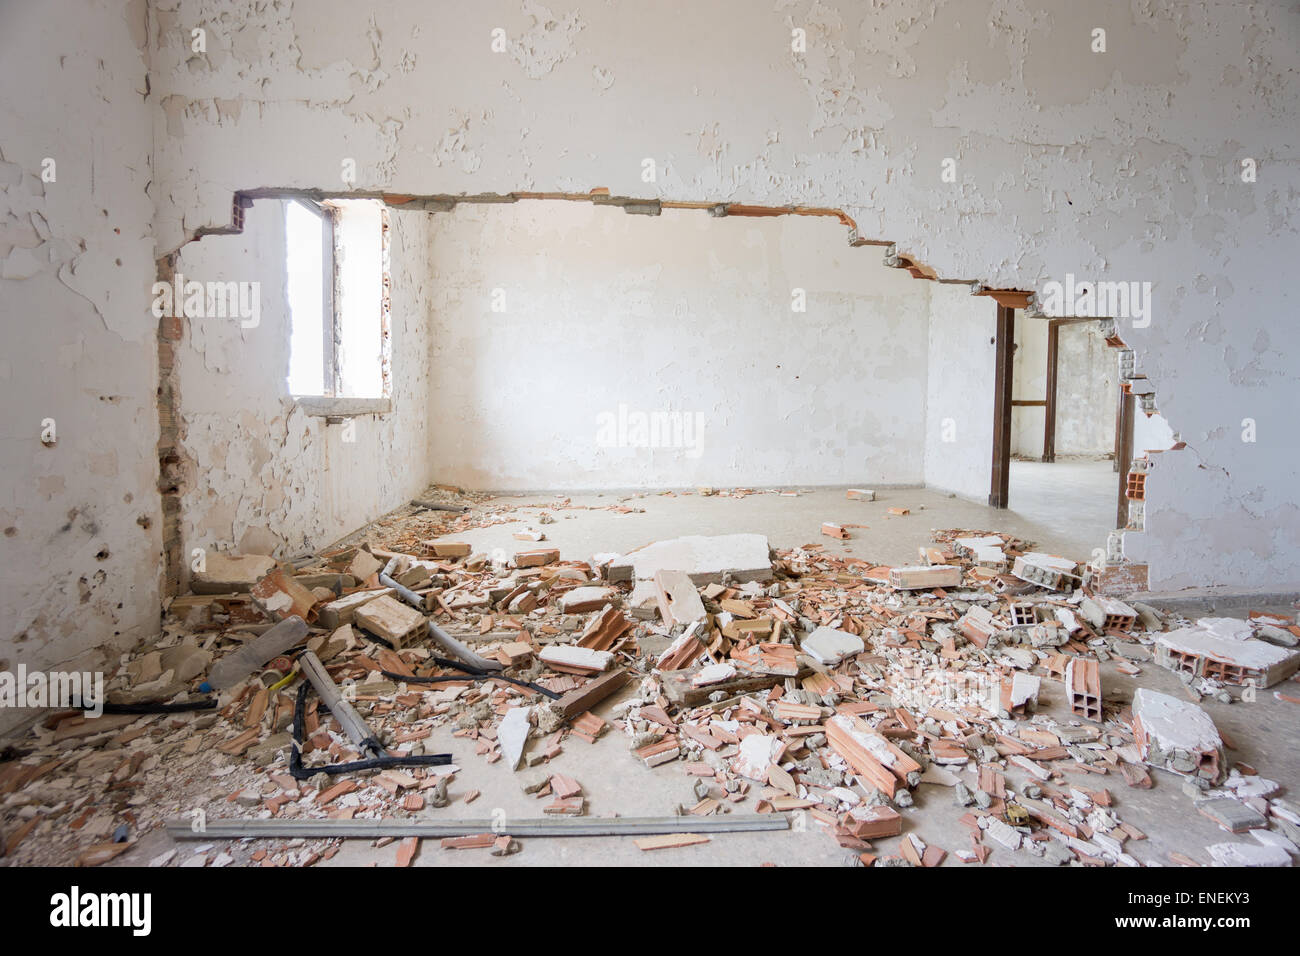 Abandoned and ruined house. - Stock Image